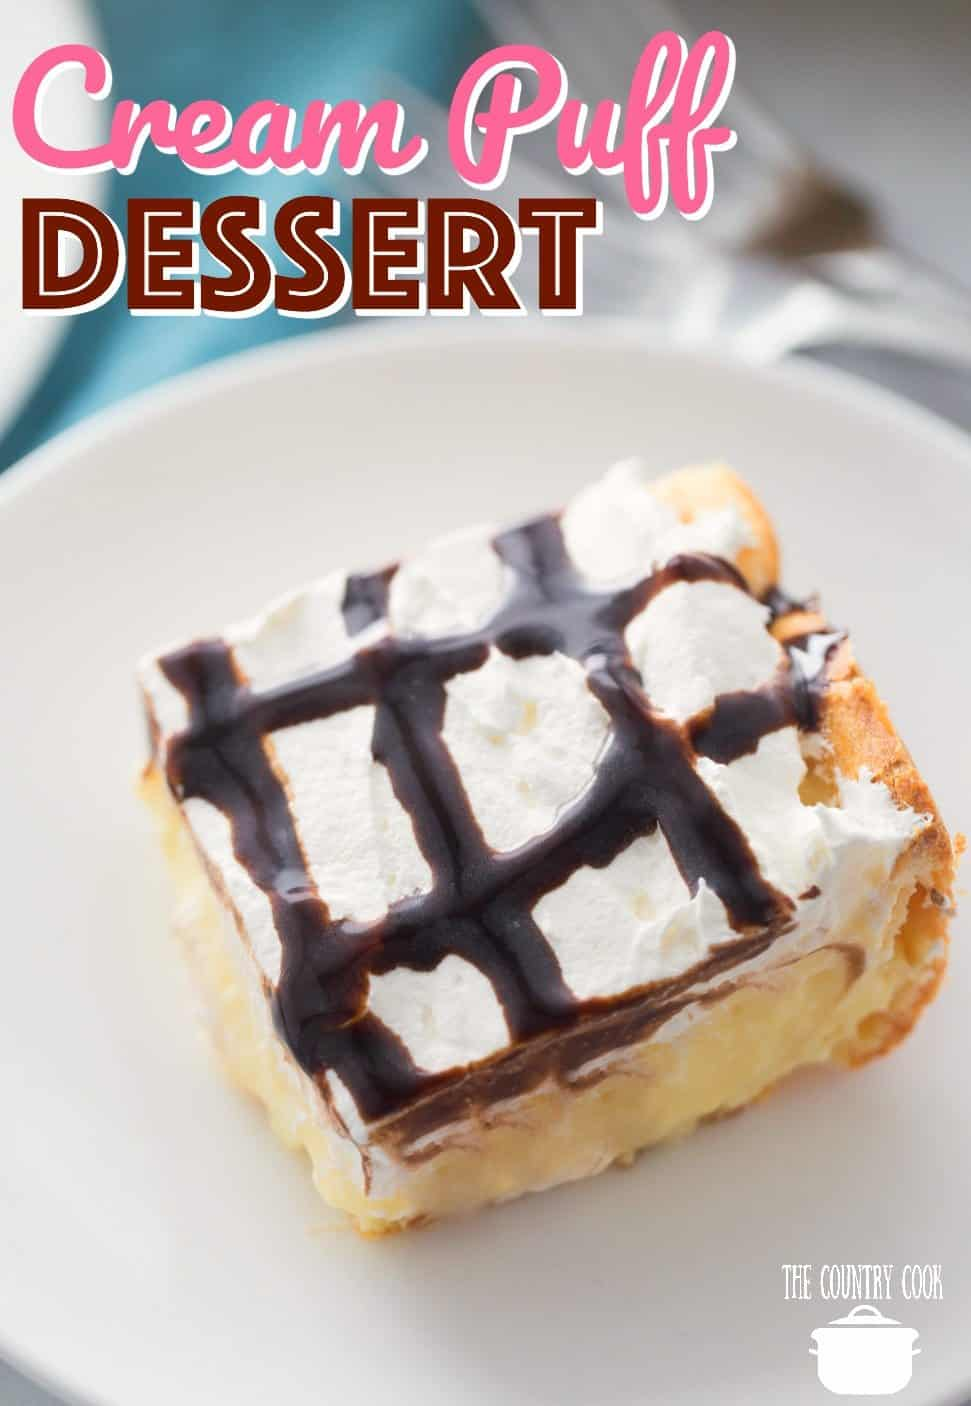 Easy Cream Puff Dessert recipe from The Country Cook. Closeup phot of a slice on a plate.